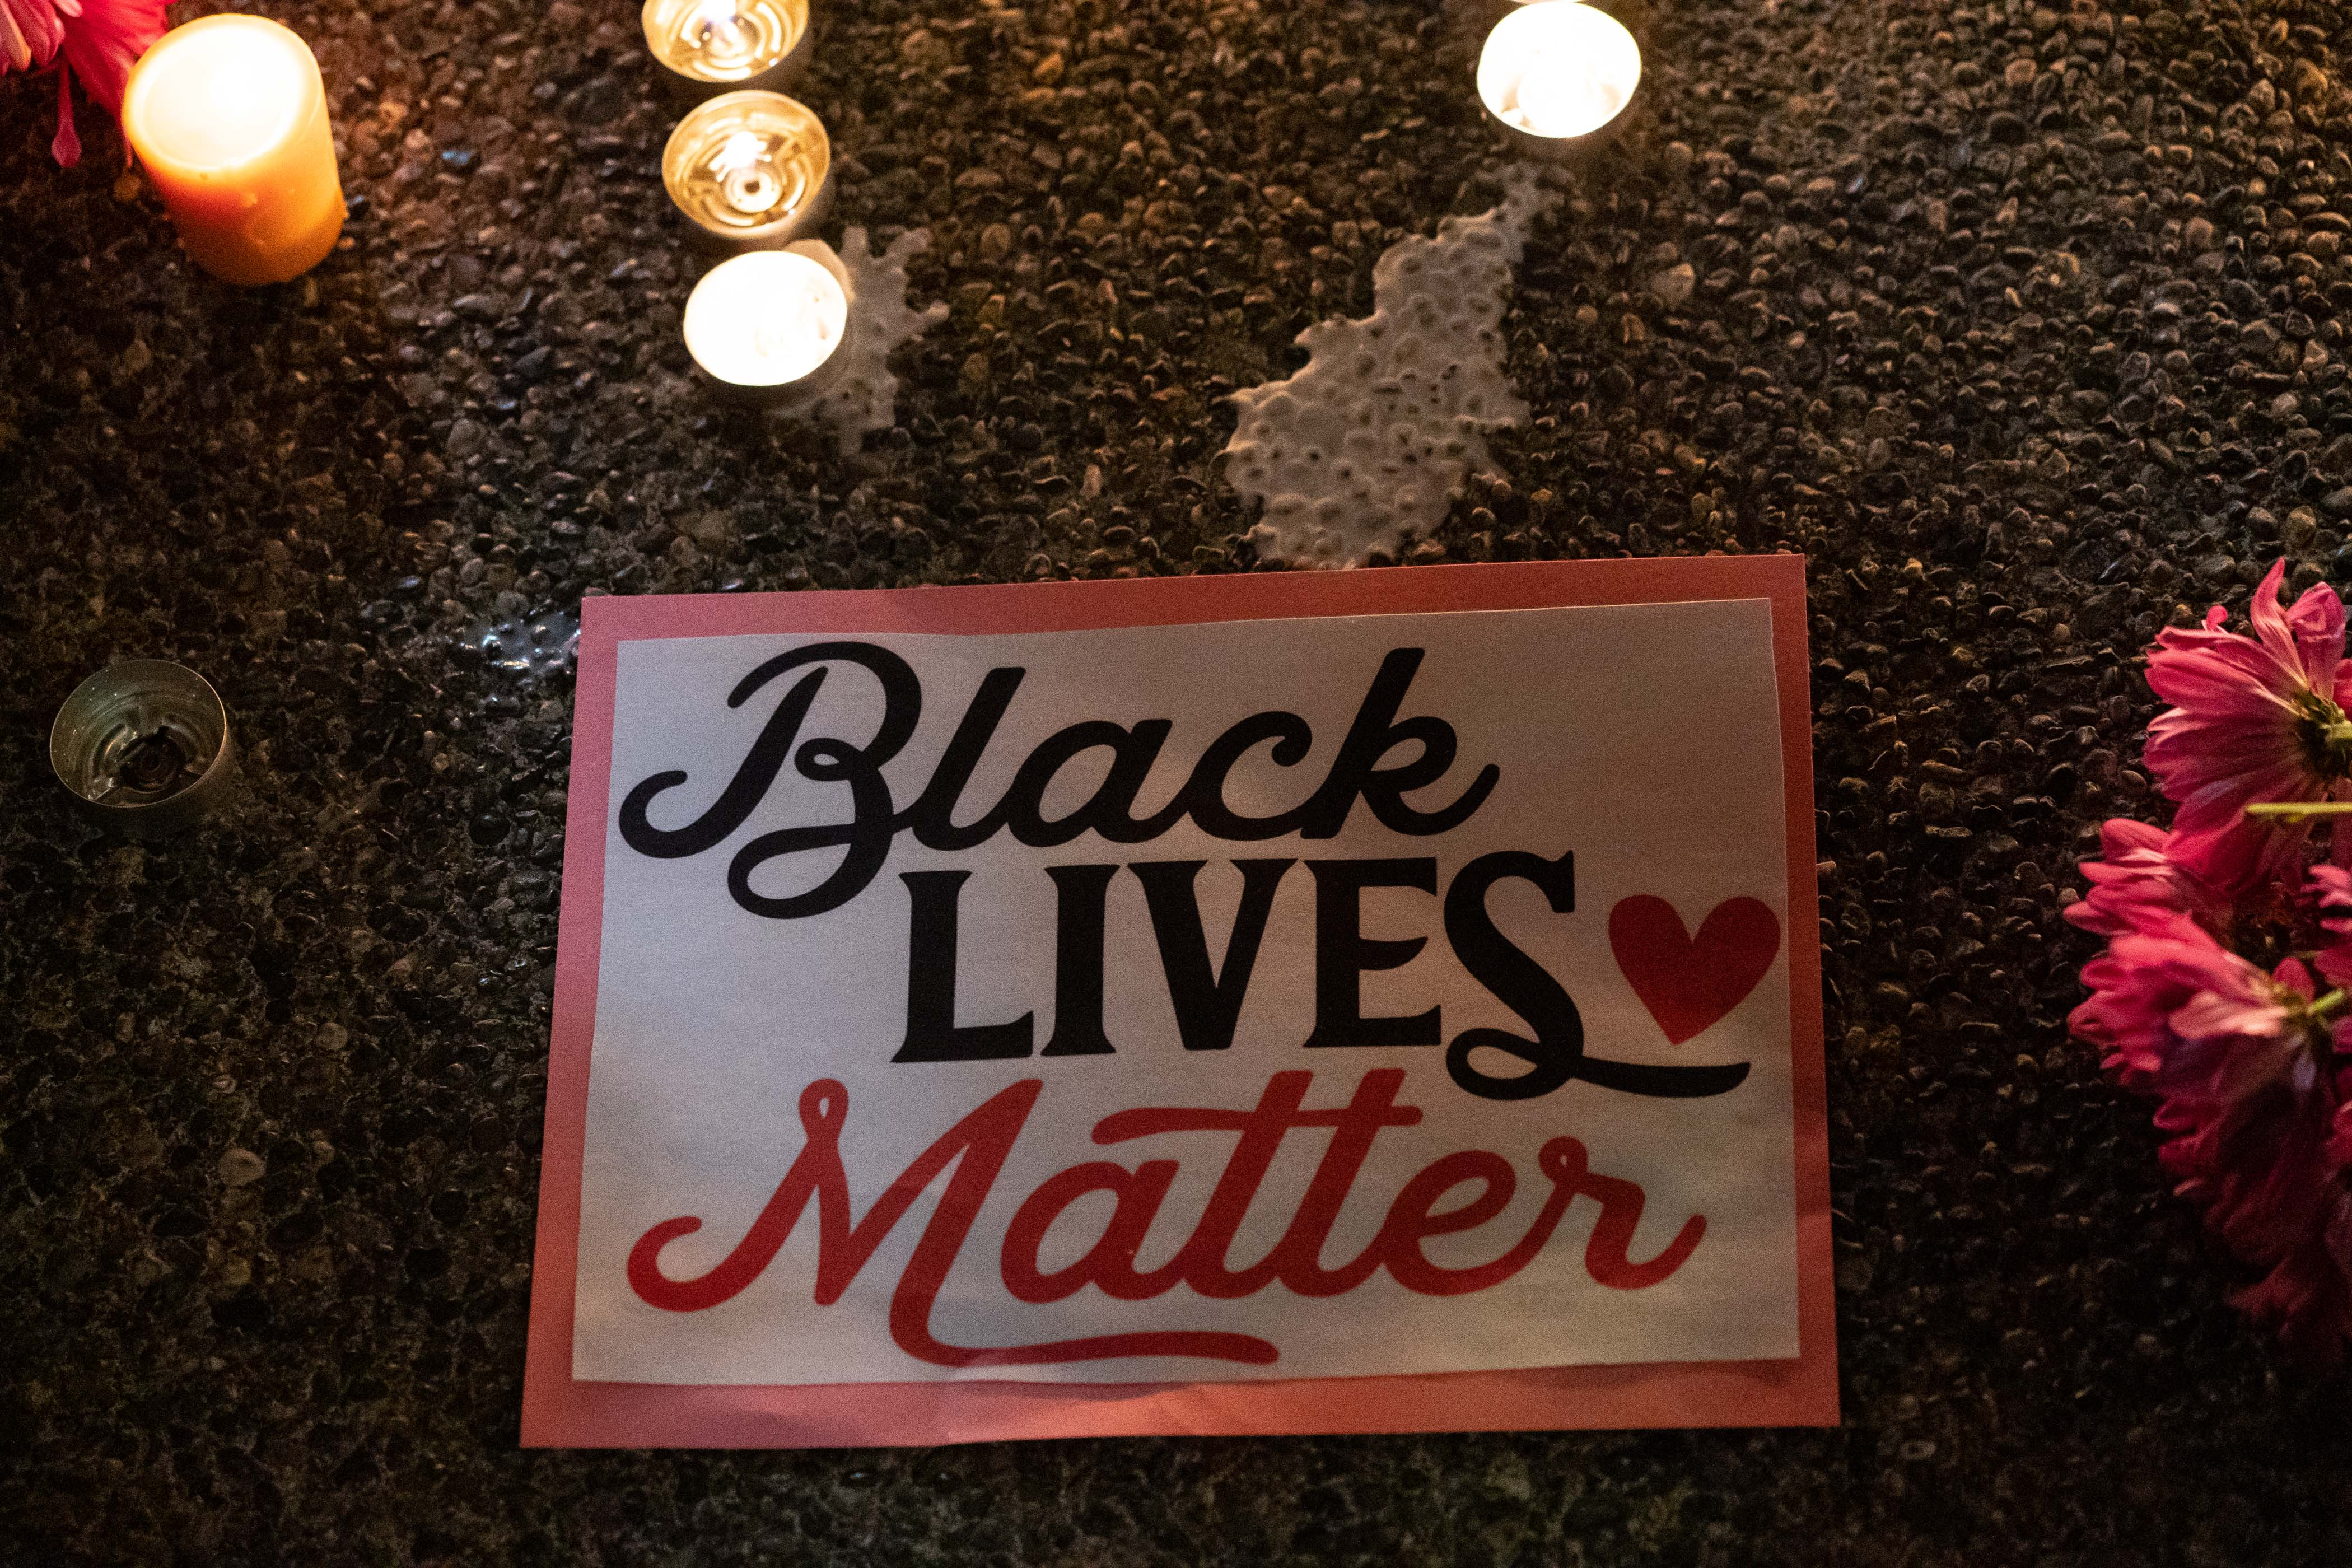 """A sign on the ground saying """"Black Lives Matter,"""" surrounded by flowers and candles."""